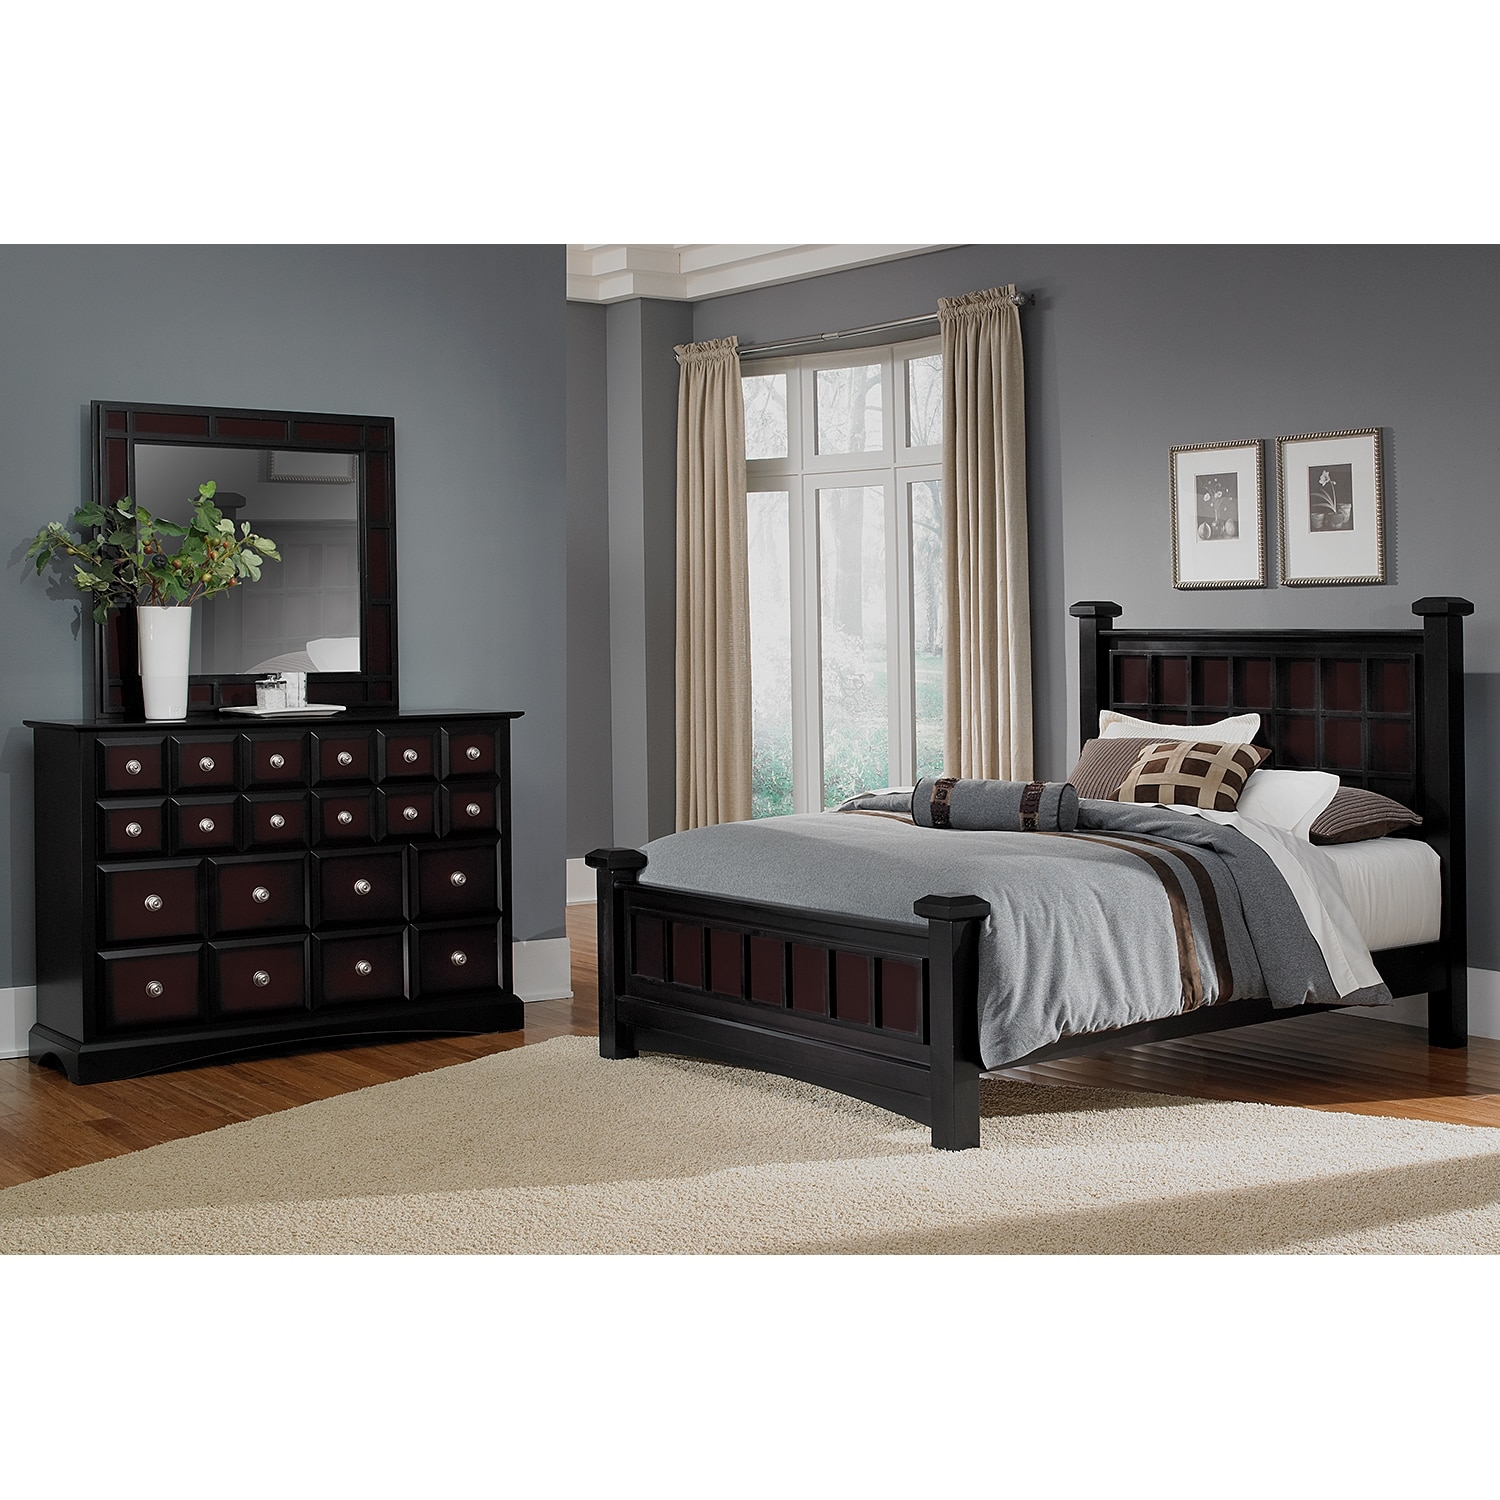 Winchester 5 pc king bedroom value city furniture for Bedroom furniture